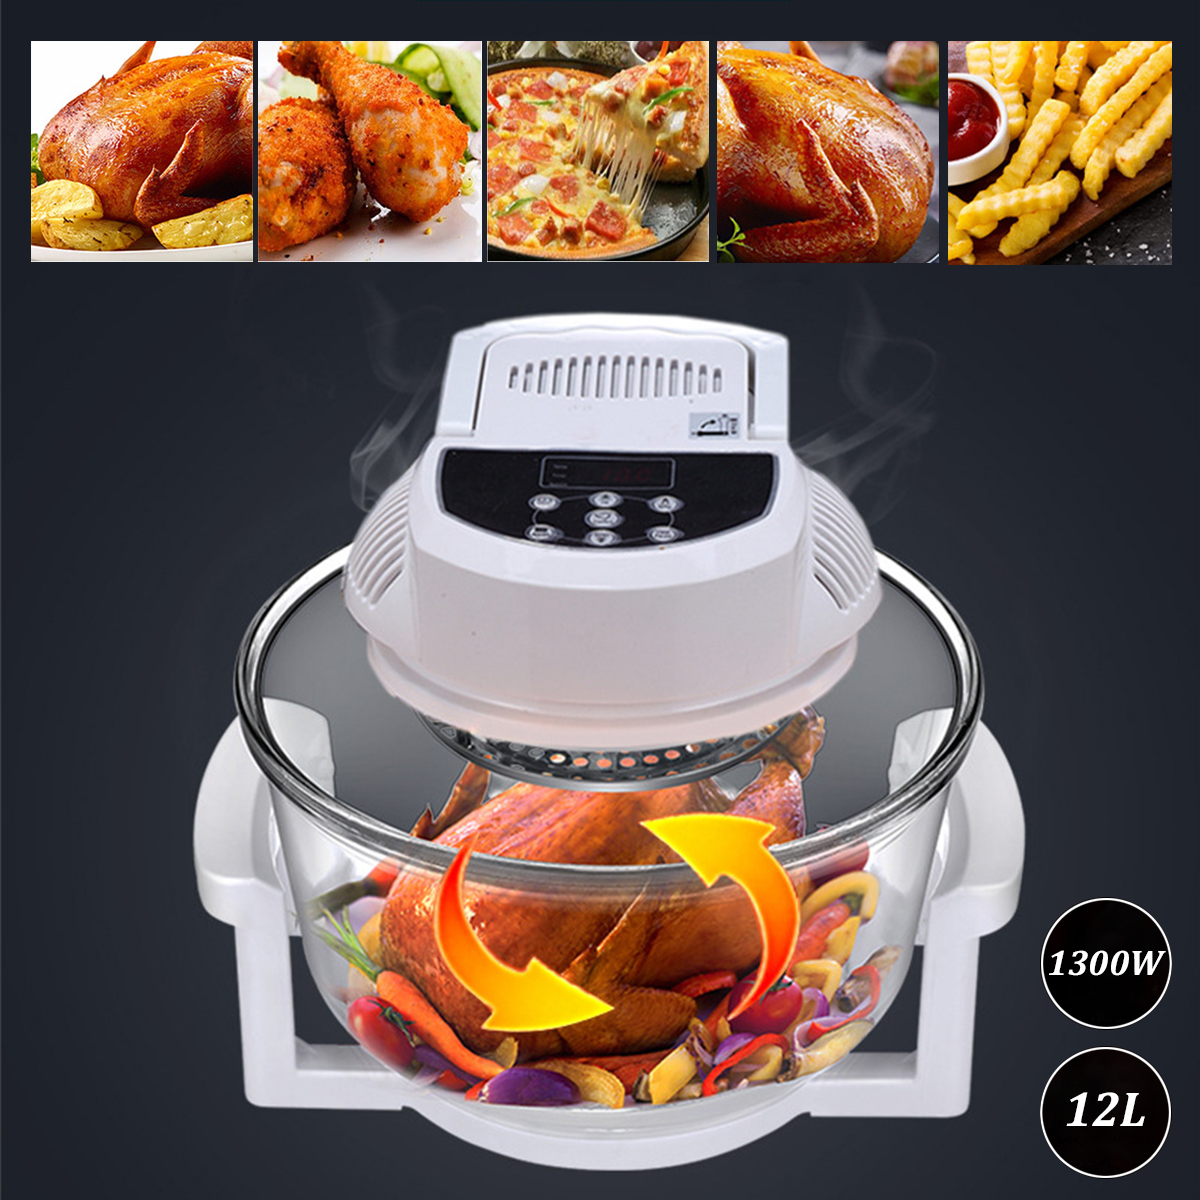 12L 1300W Electric Air Fryer Machine Halogen Infrared Oven French Fries Chicken Skillet